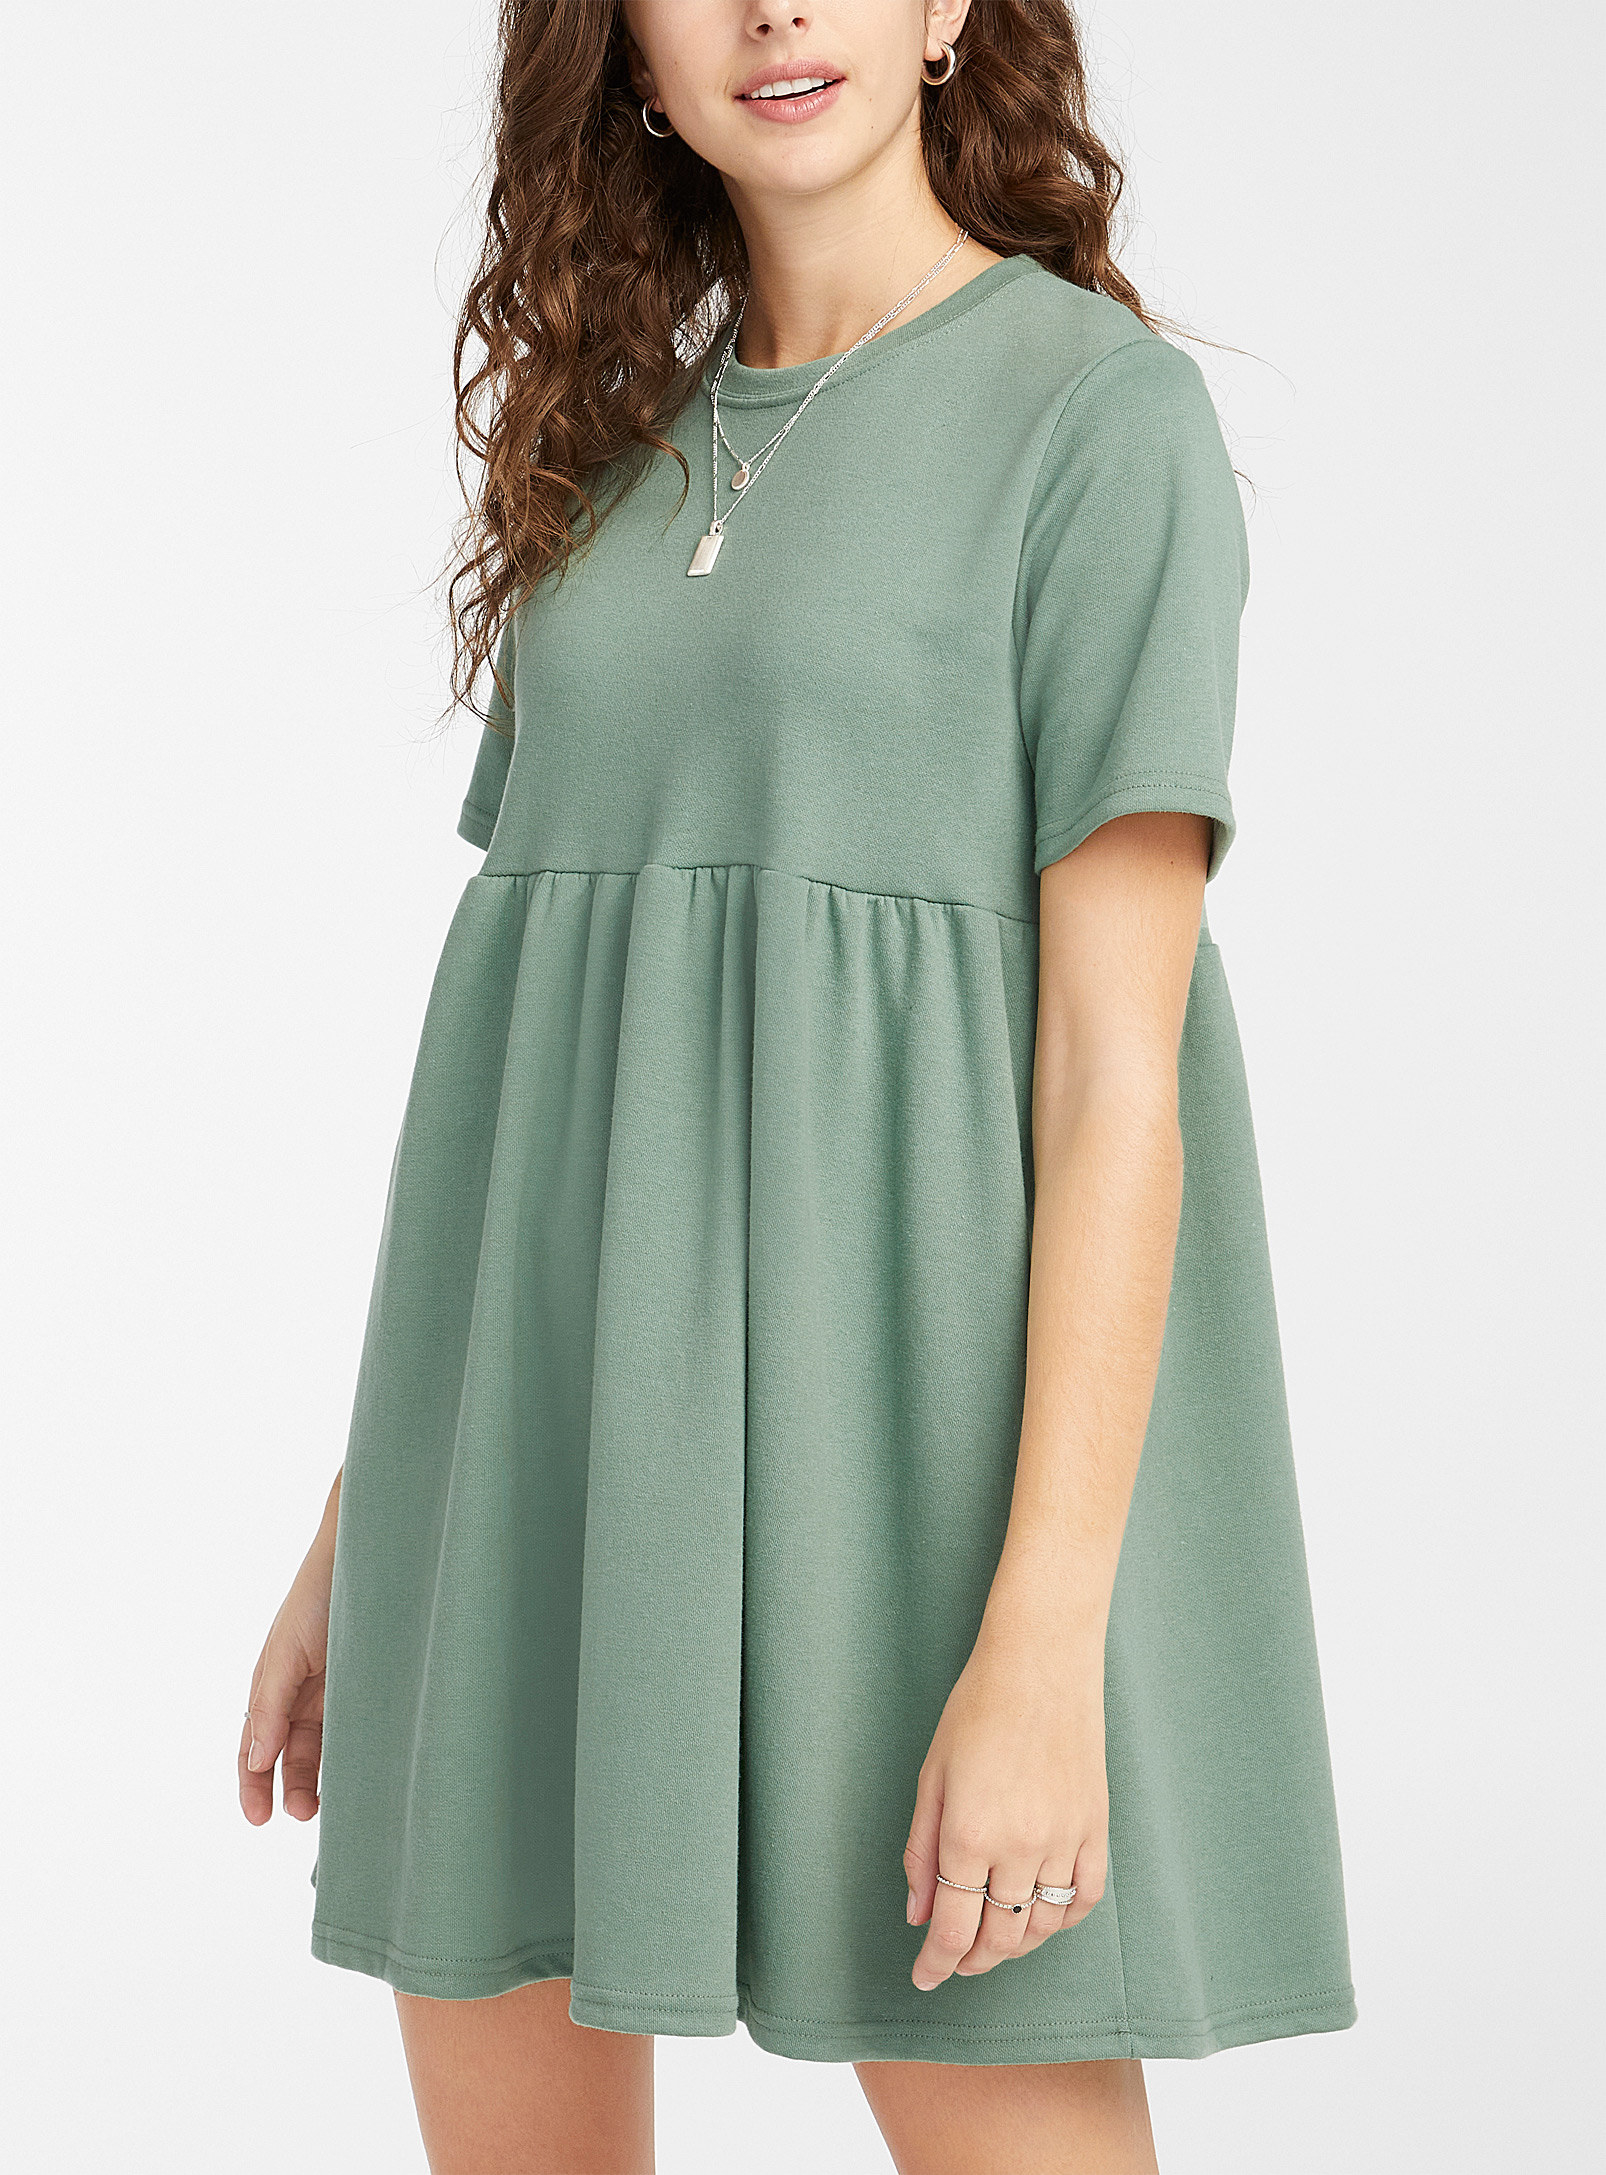 A person wearing a T-shirt dress with a flowy skirt